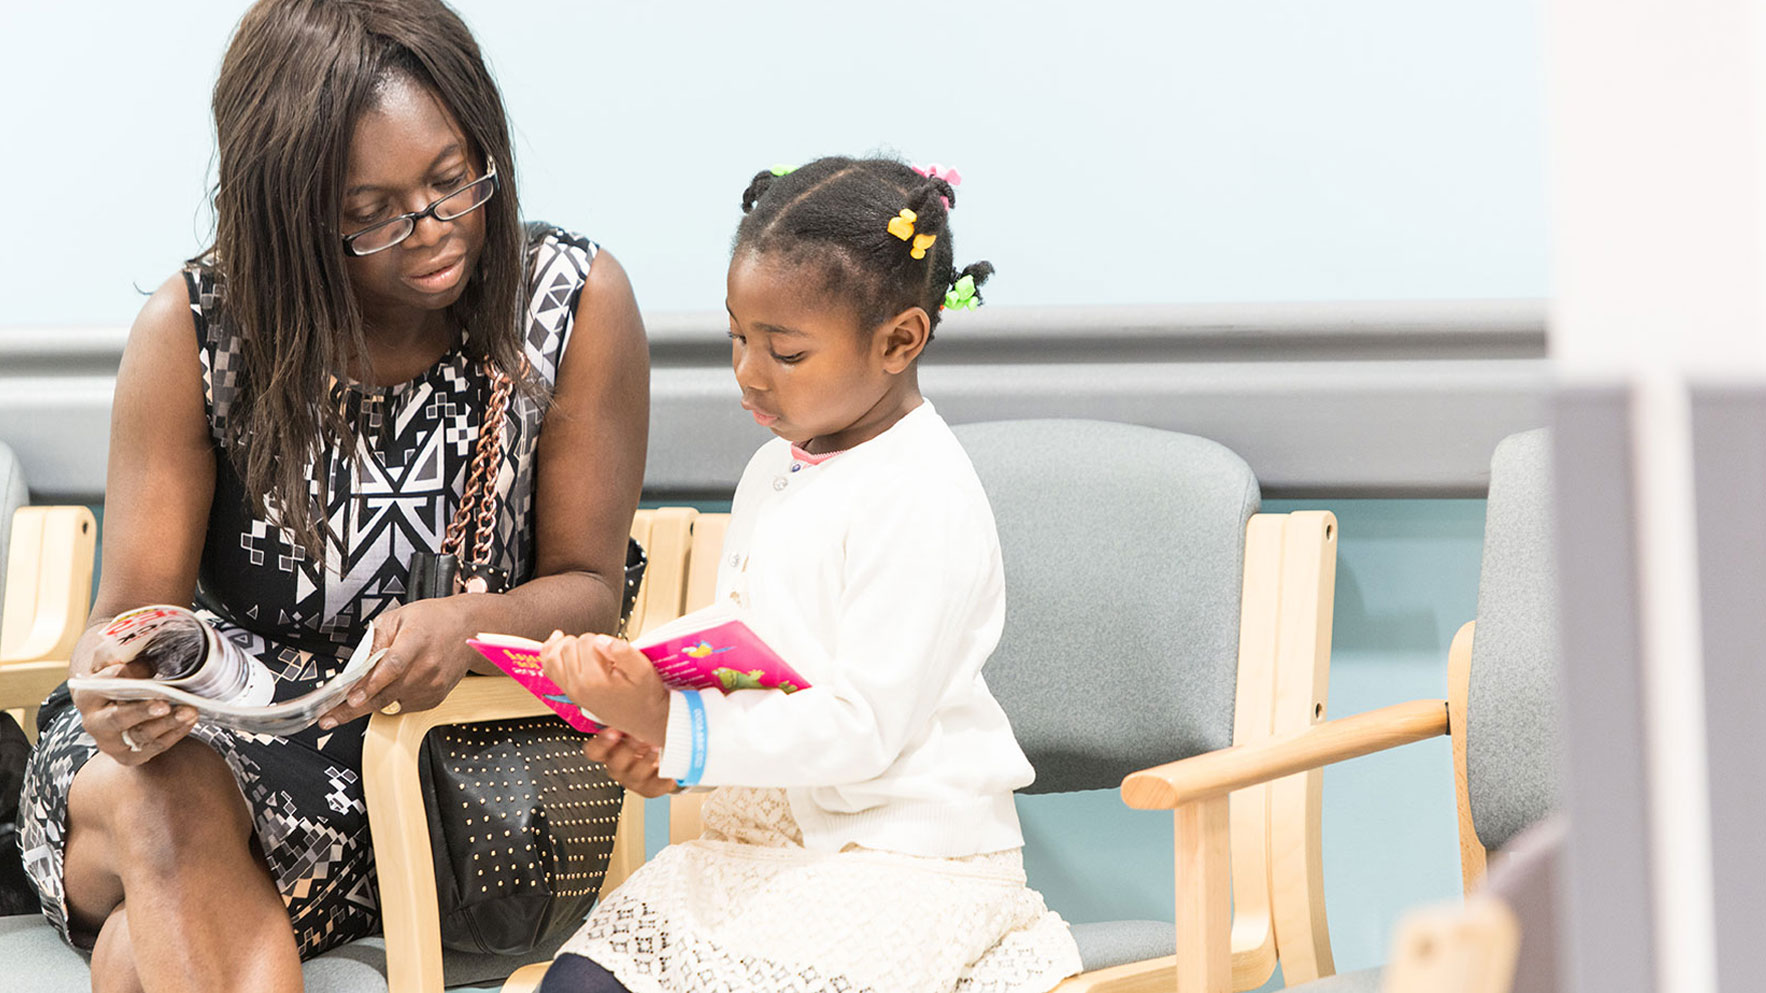 Deanne sitting in a hospital waiting room reading with her young daughter.